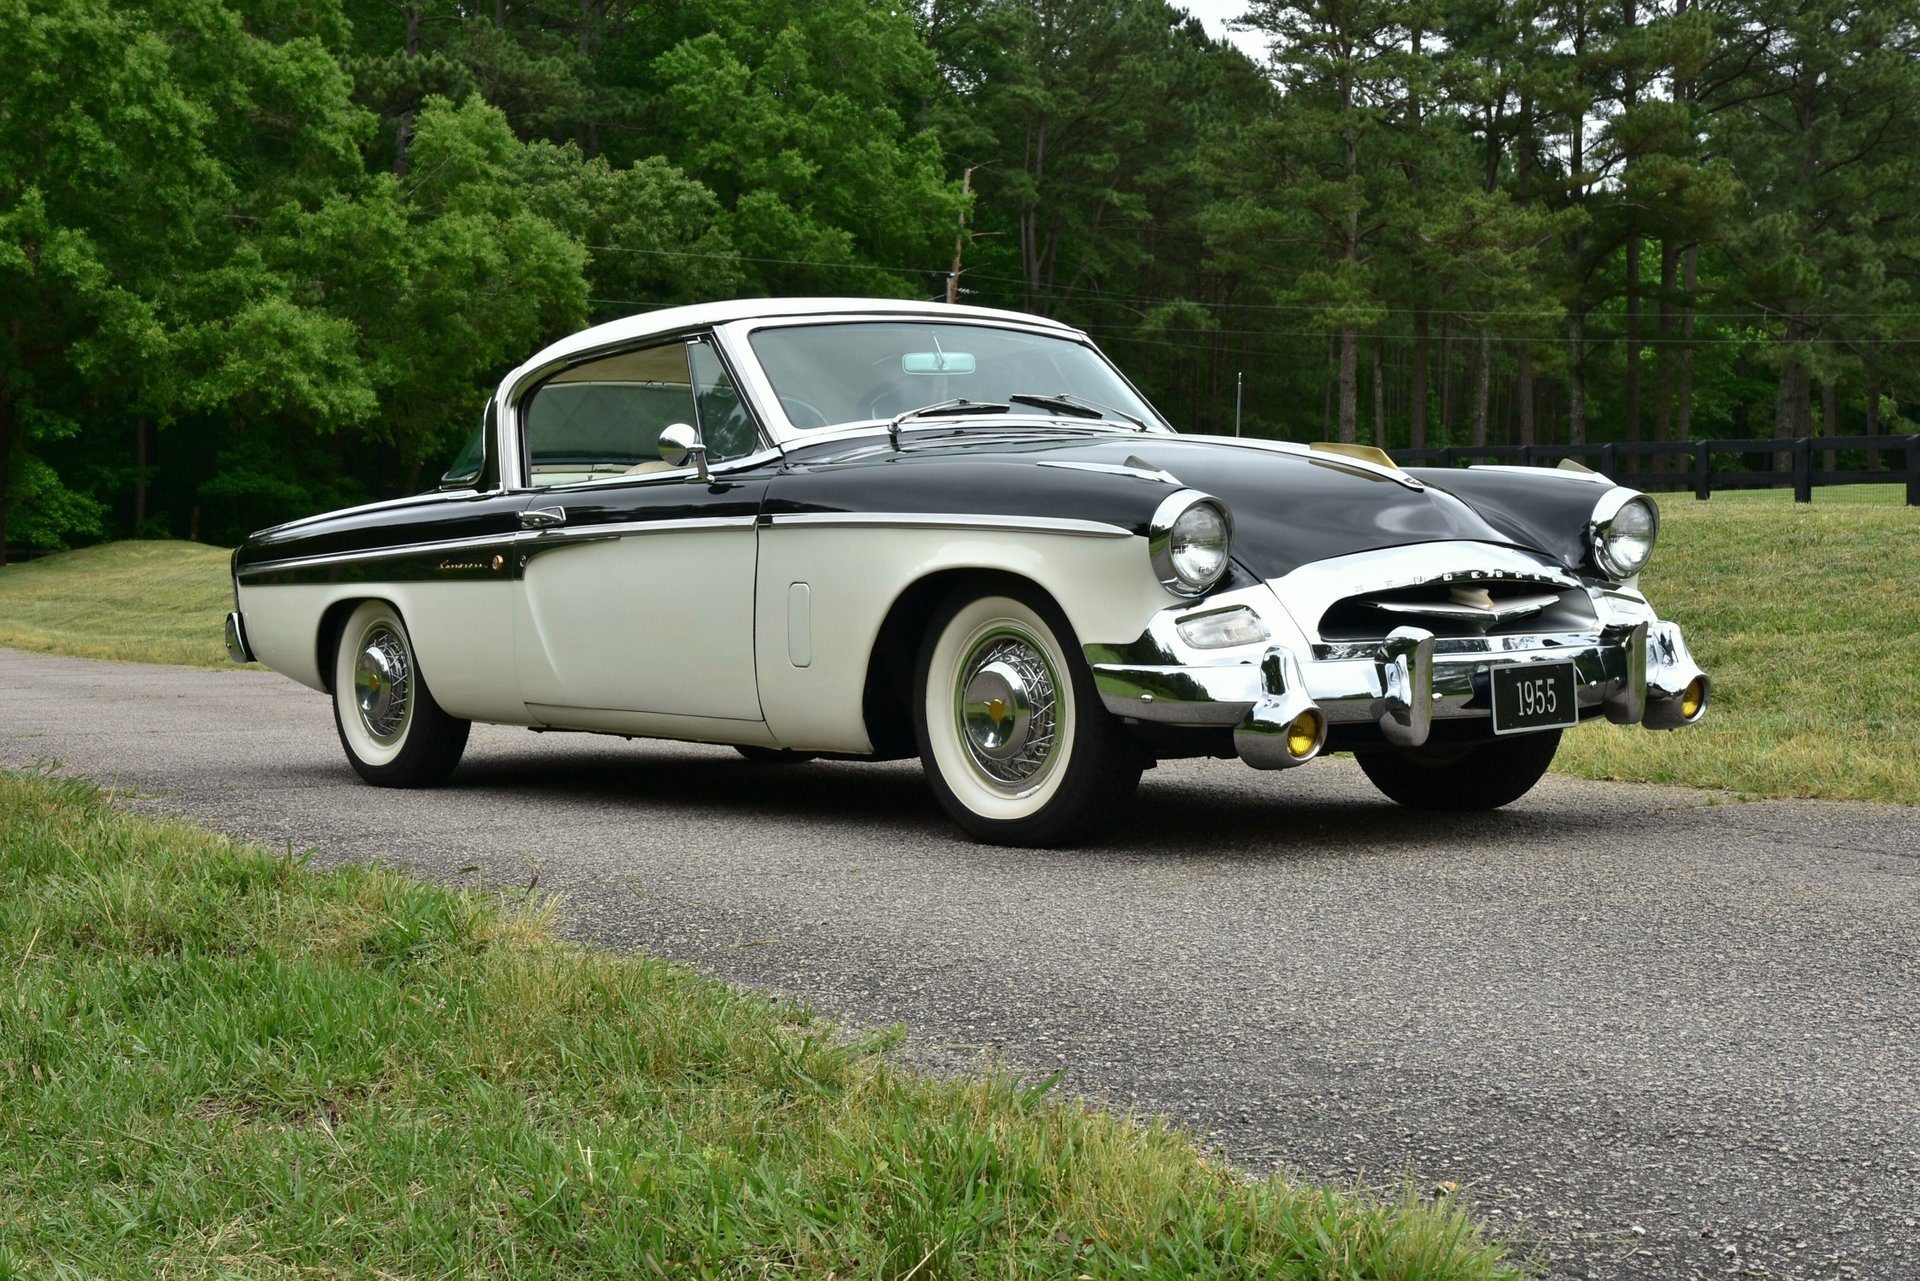 Auction 1955 Studebaker President Speedster